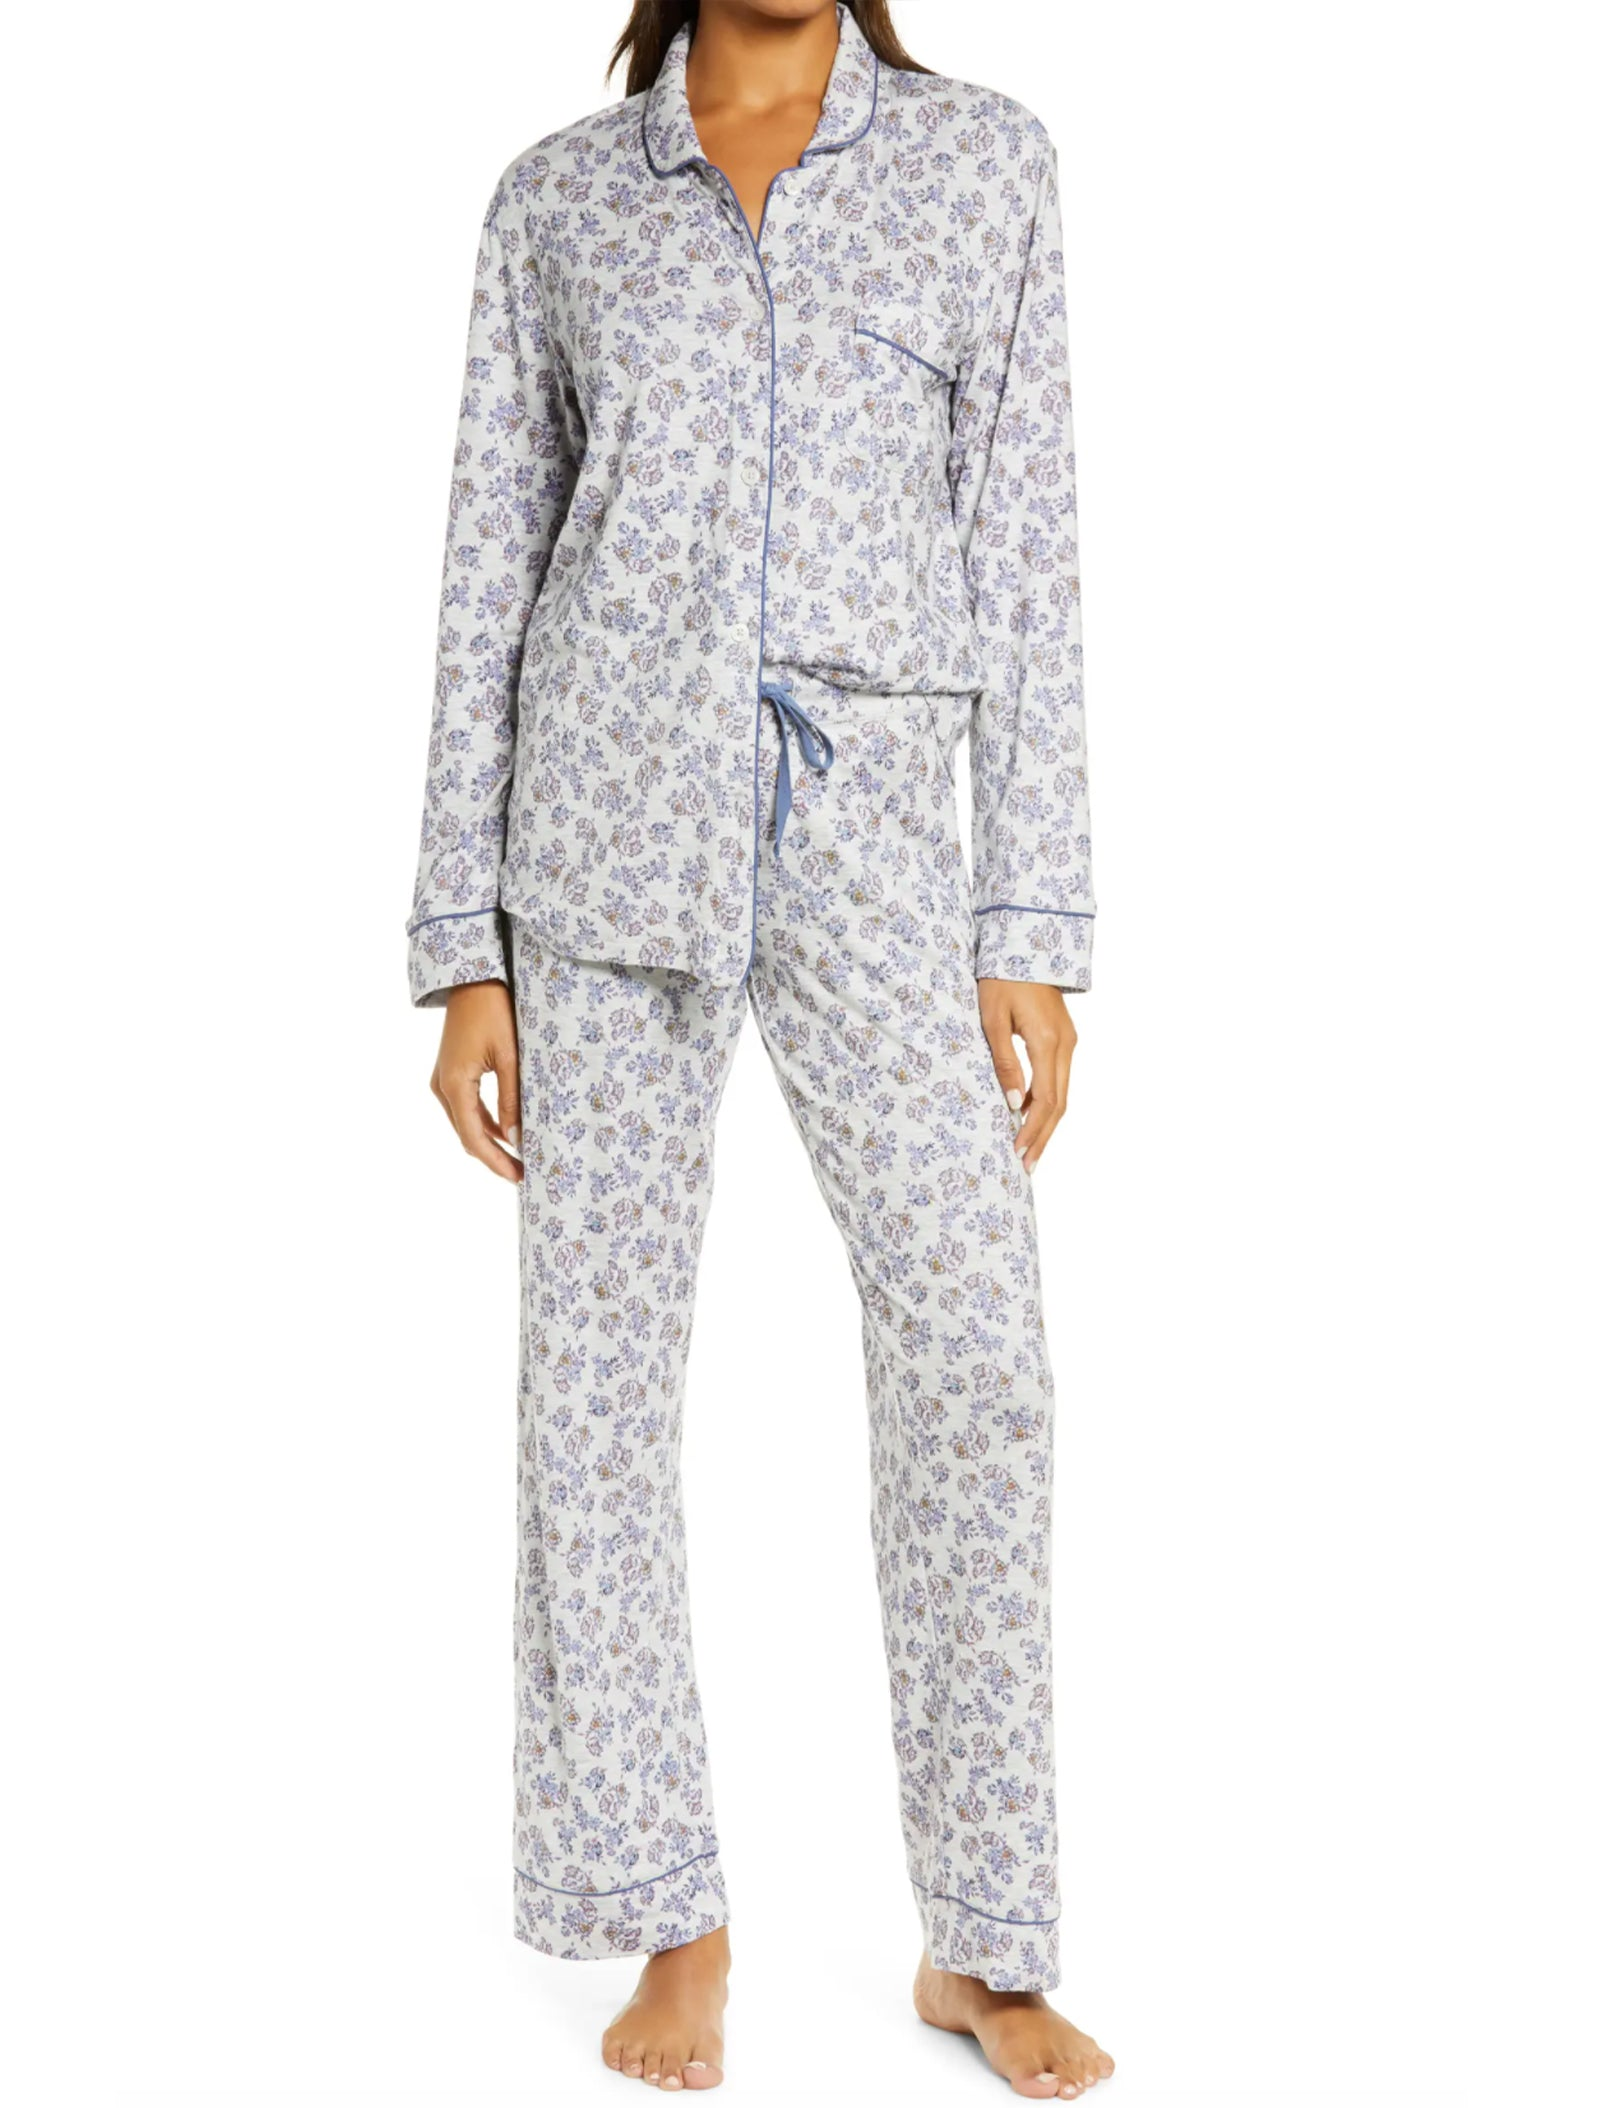 Potager Modal Kate Pajama Set